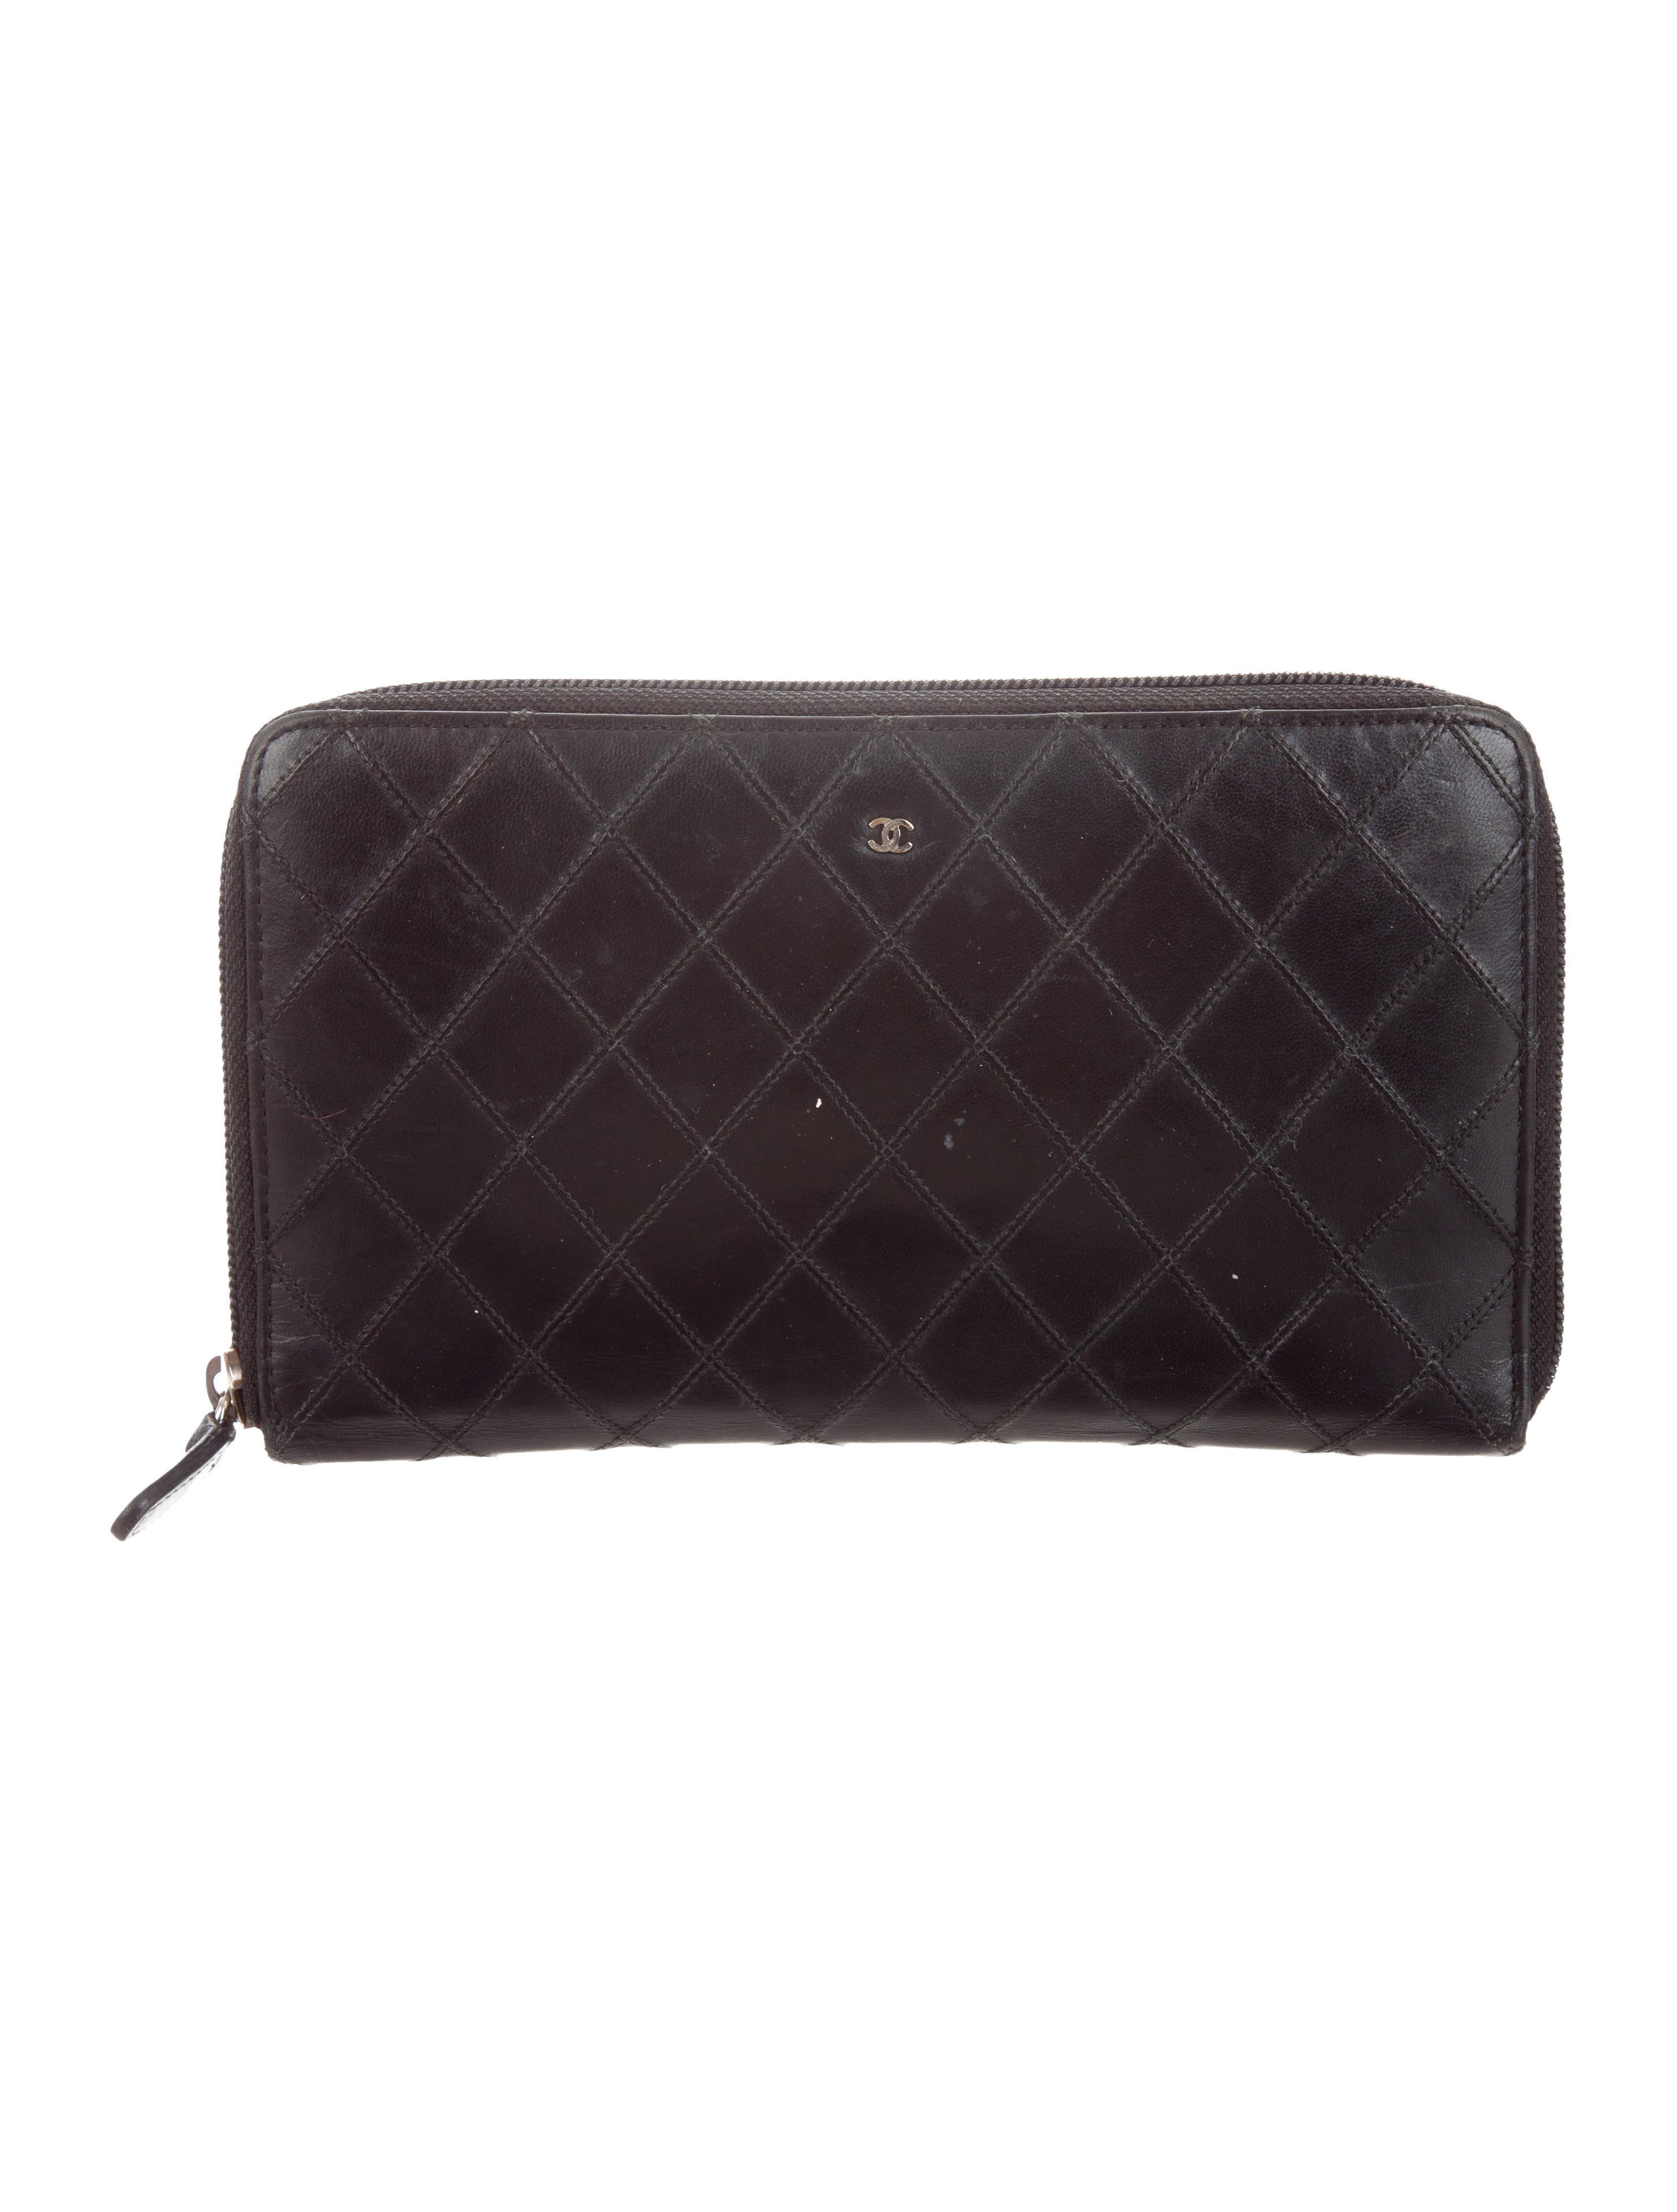 373bf32347a2a Chanel Wallets